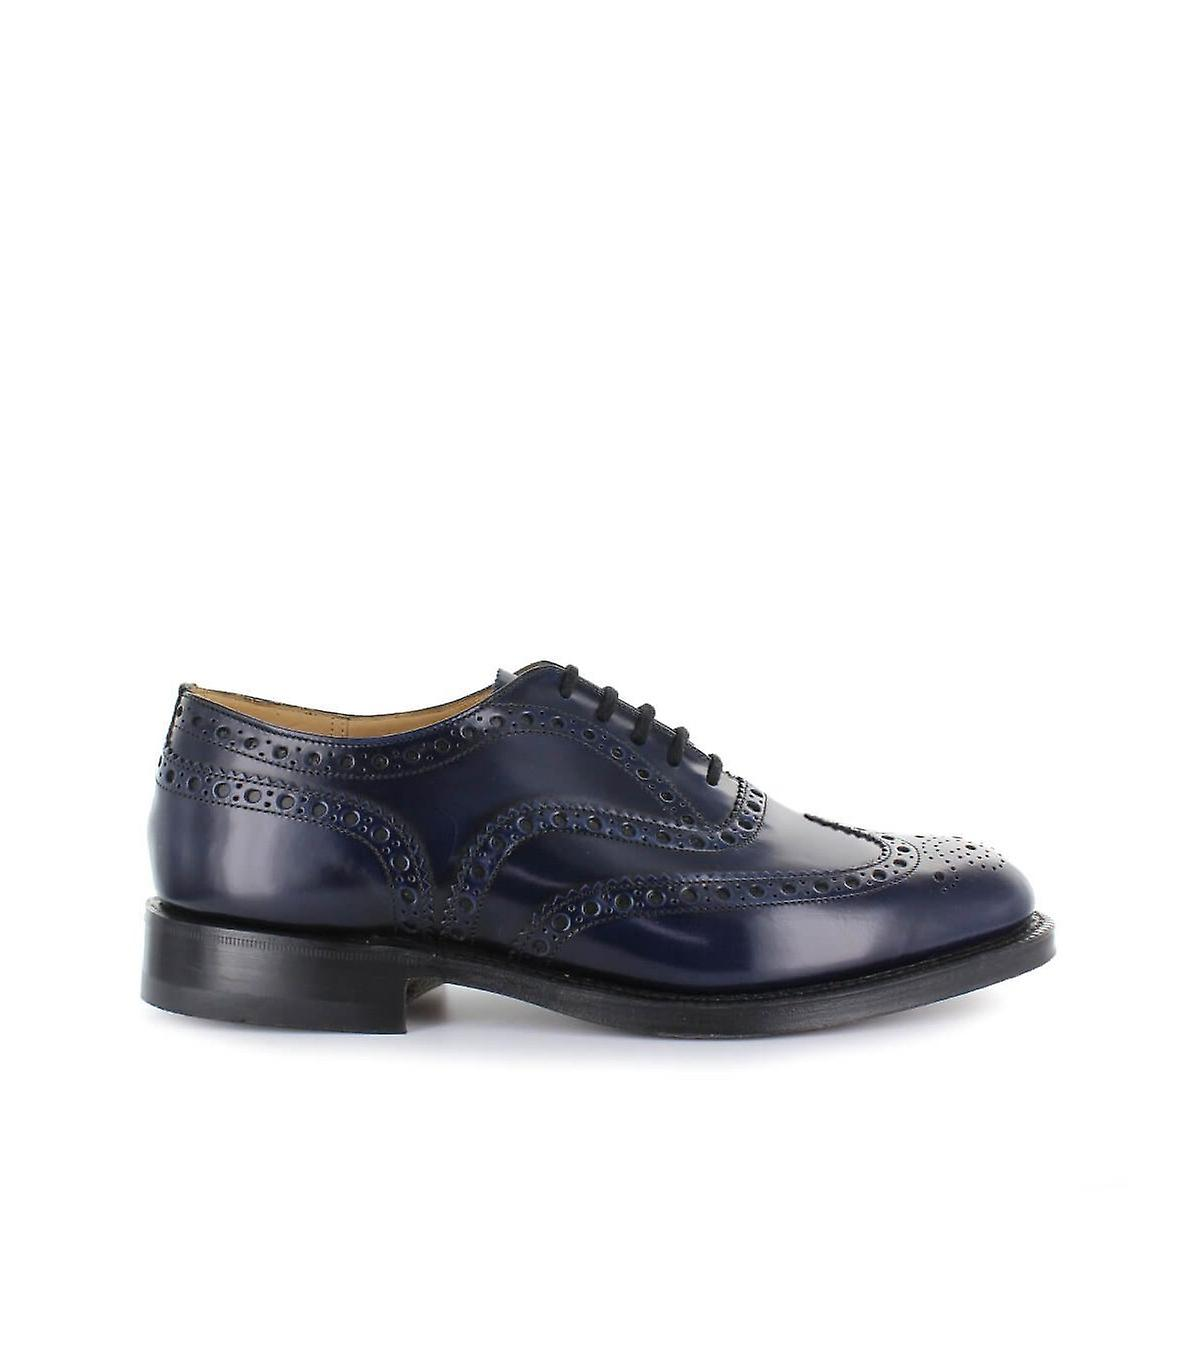 CHURCH'S BURWOOD LIGHT NAVY LACE UP